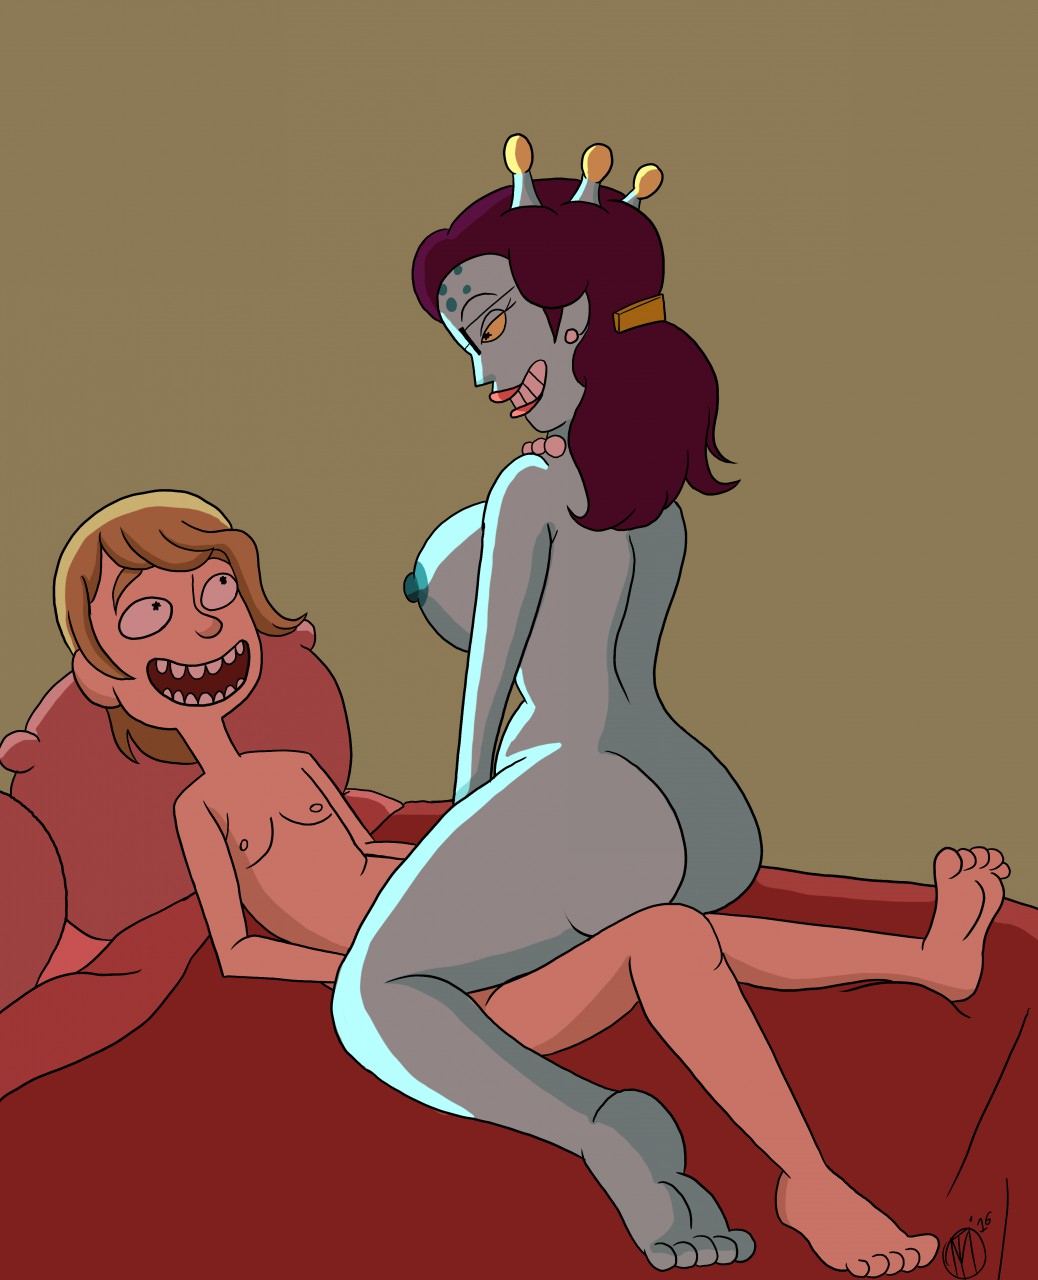 naked and morty beth rick Kung fu dino posse lucy